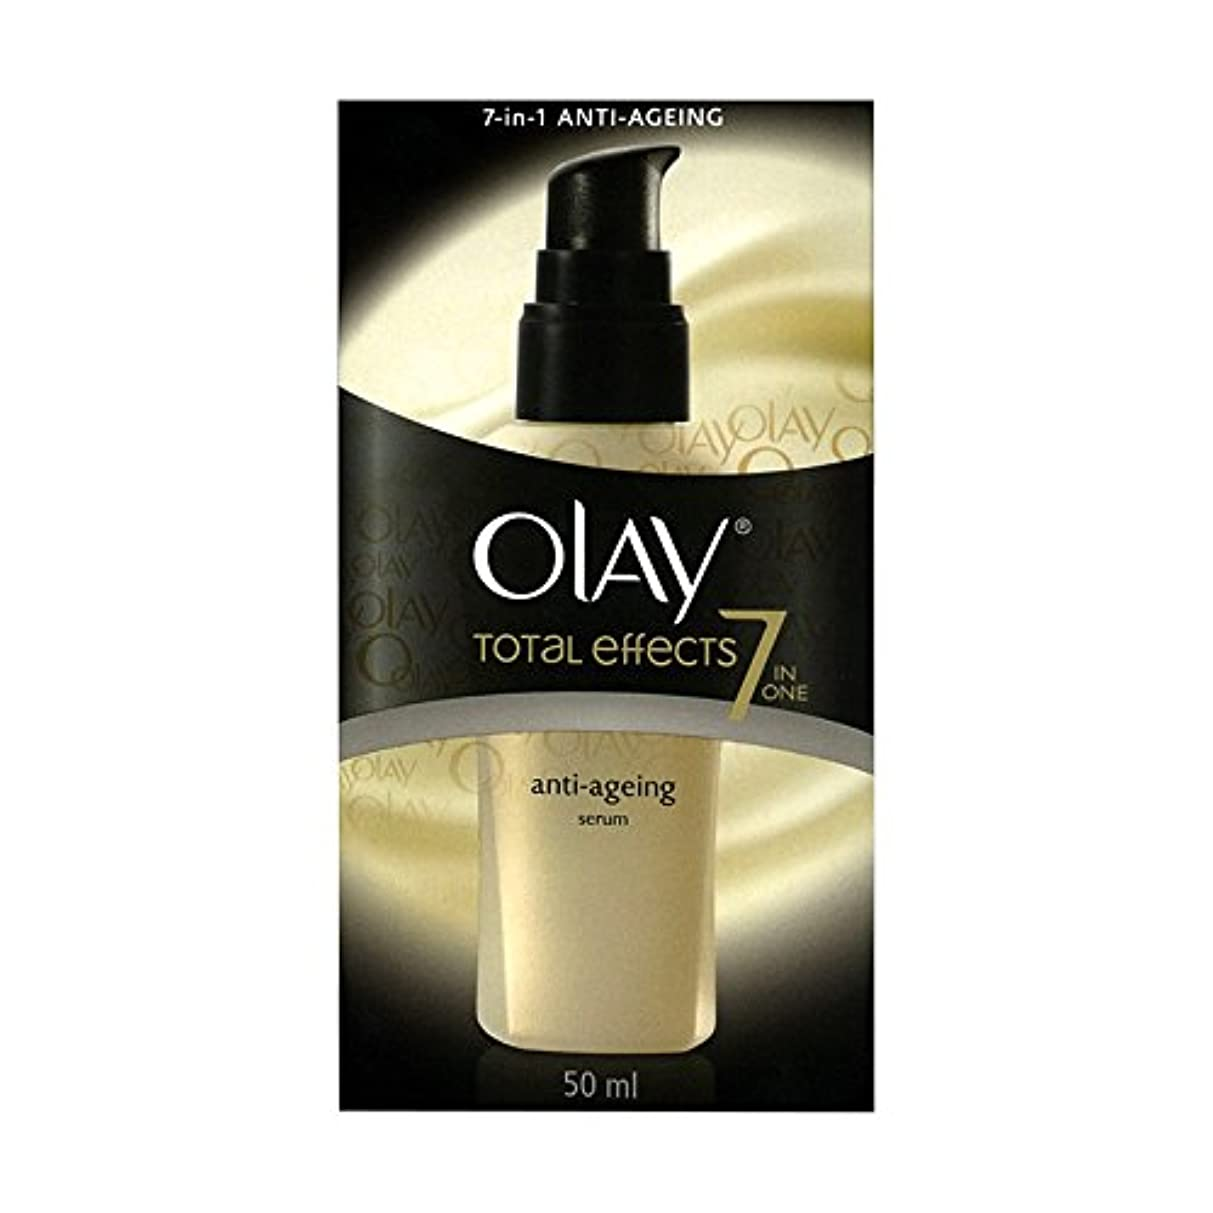 羊セラー勘違いするOlay Total Effects Anti-Ageing Smoothing Serum 50 ML (Ship From India) [並行輸入品]